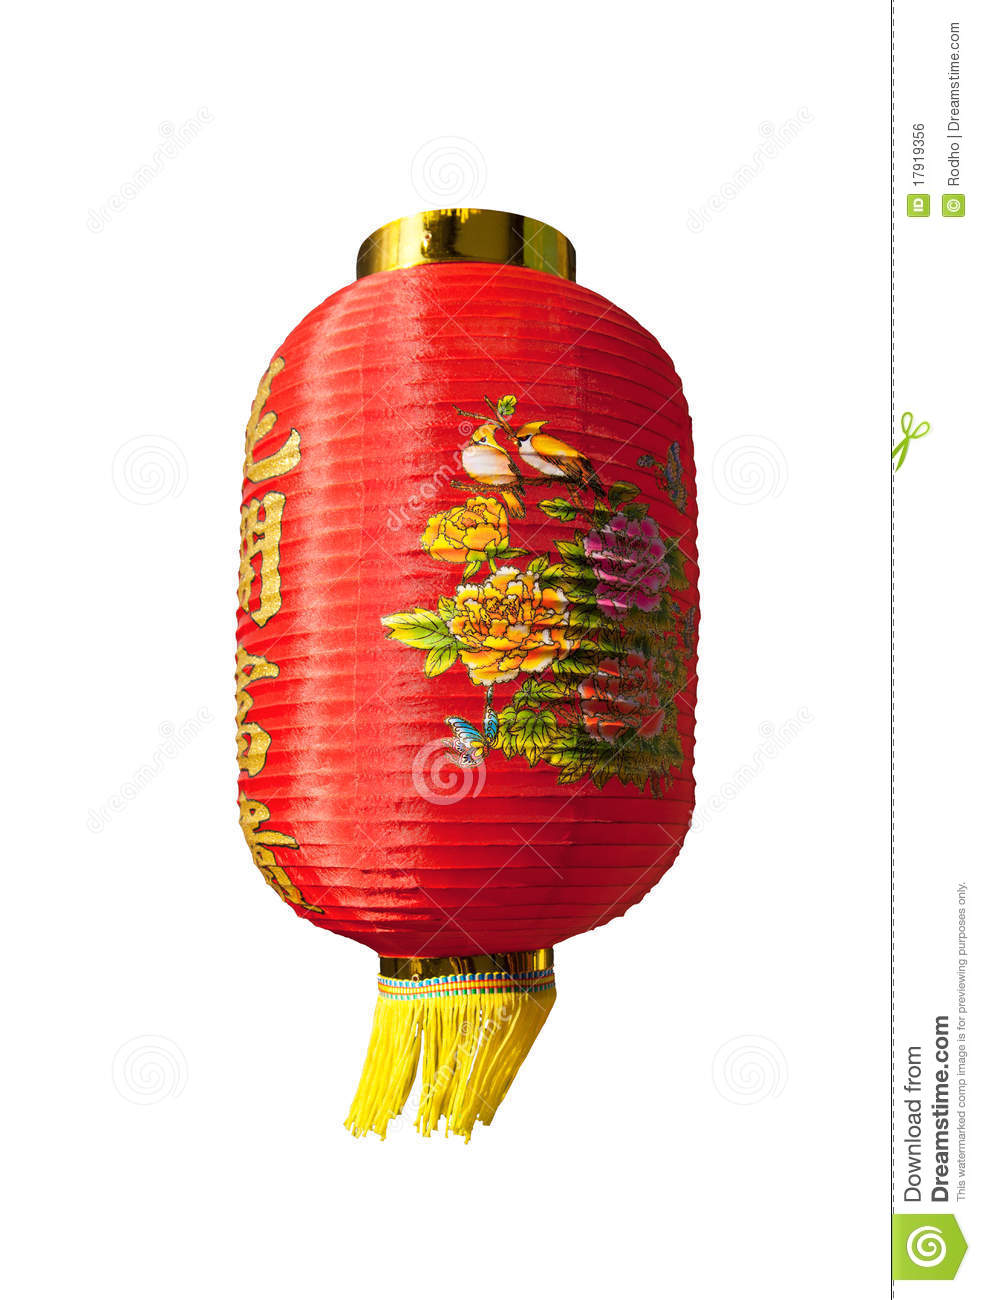 ... Decorative Chinese Lantern Royalty Free Stock Image - Image: 17919356